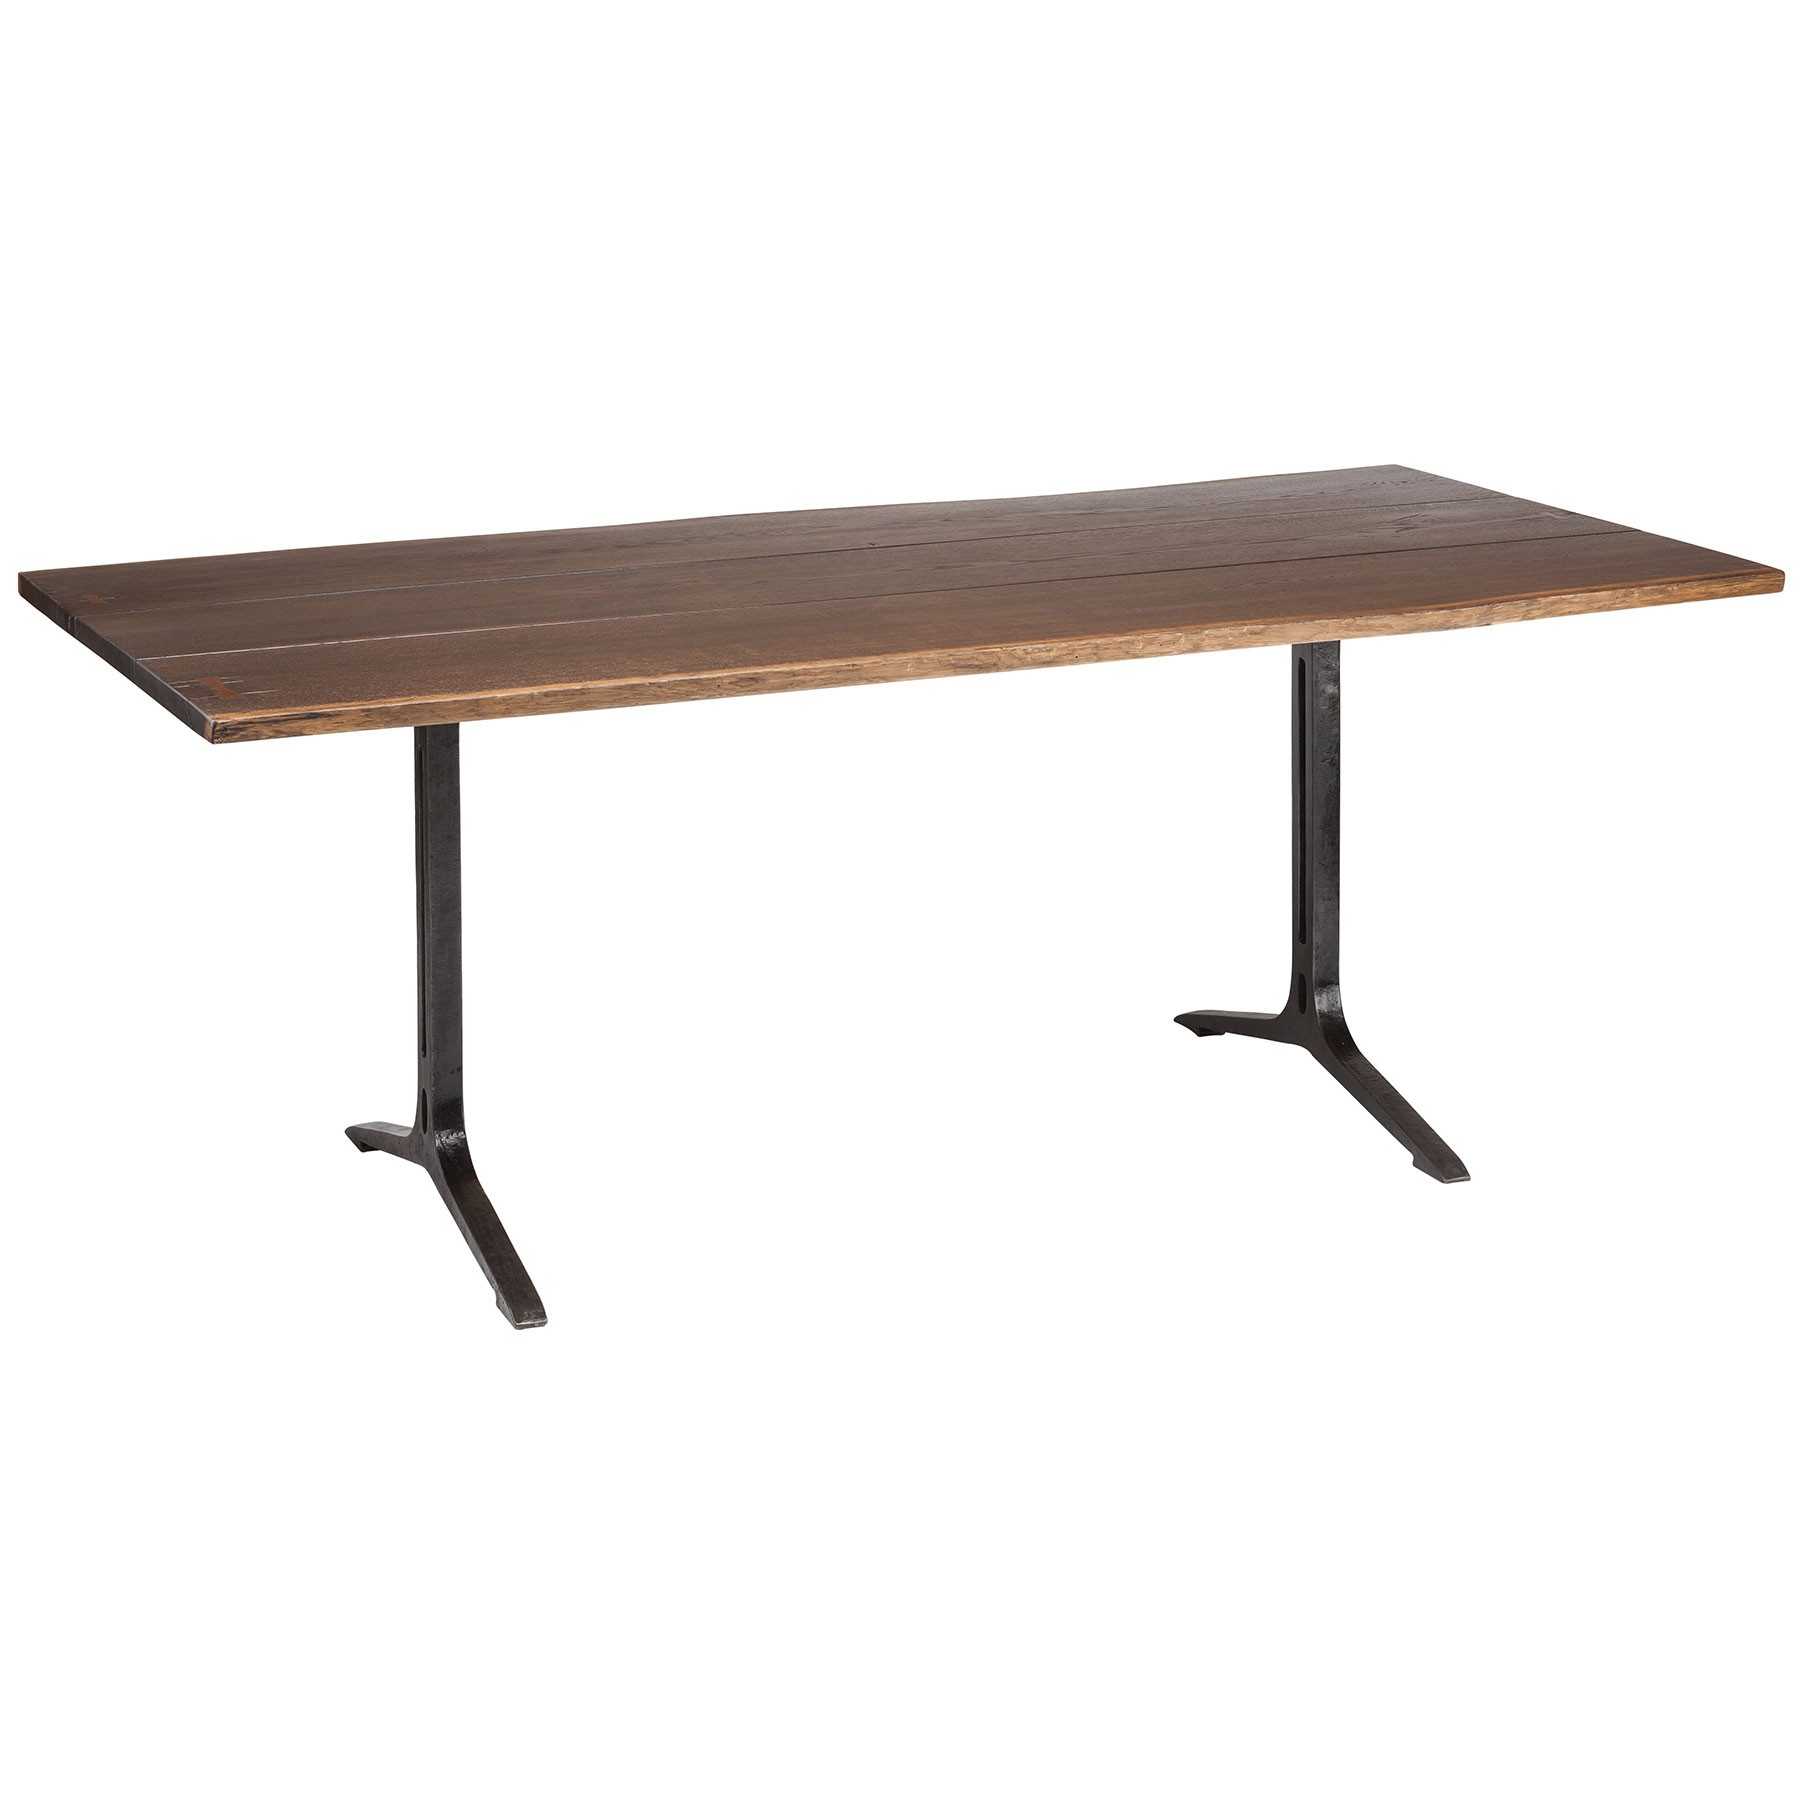 Samara Dining Table – Seared Oak / Black Intended For Famous Dining Tables In Smoked/seared Oak (View 4 of 25)